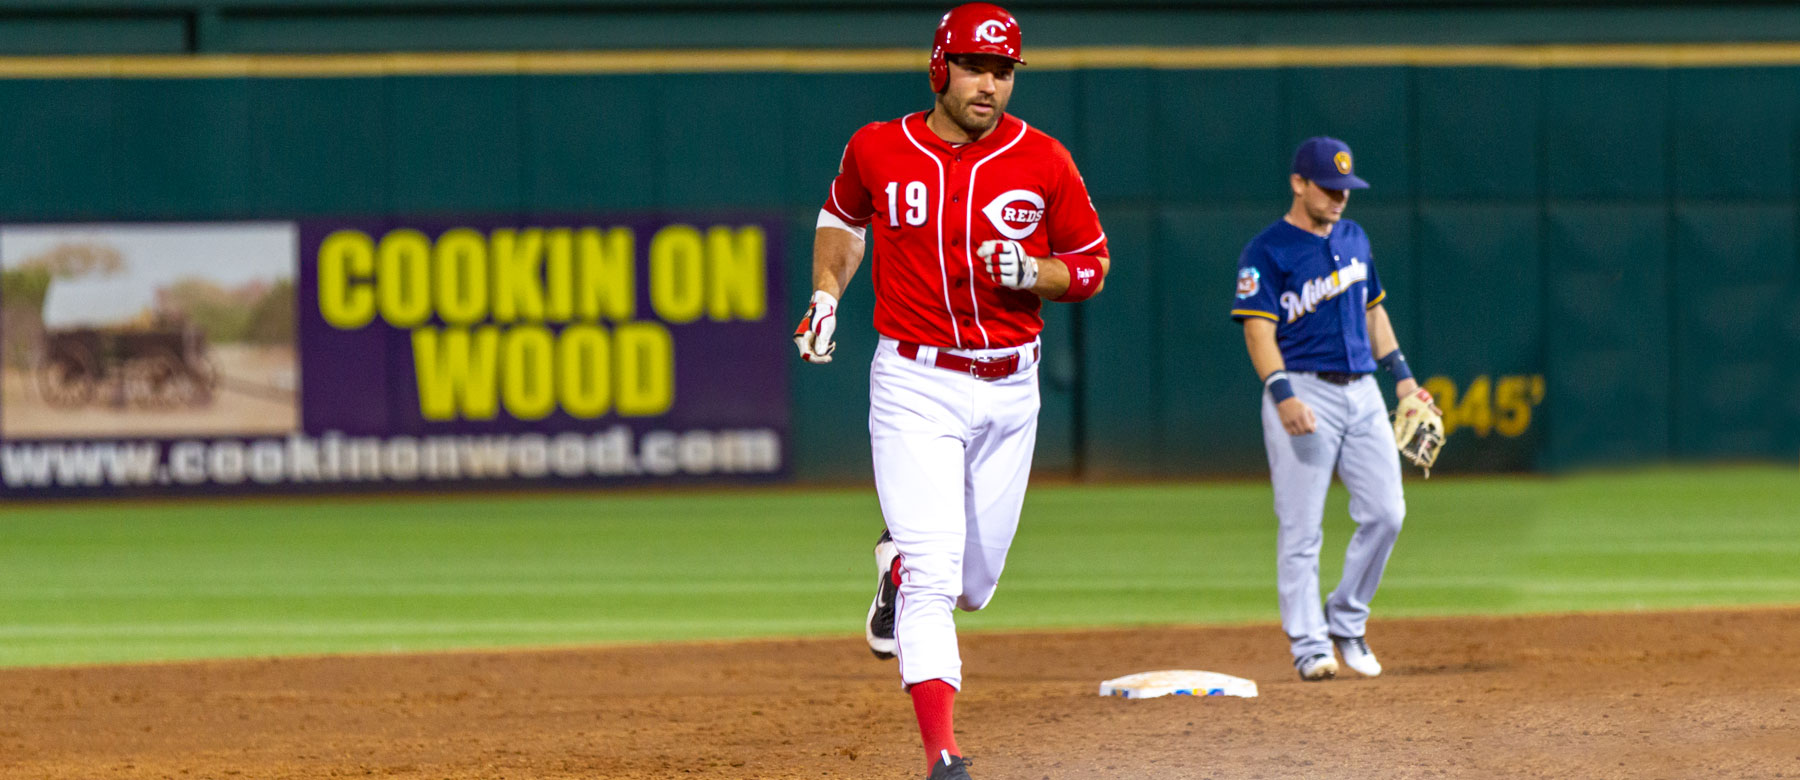 Reds release spring training schedule for 2020 - Redleg Nation